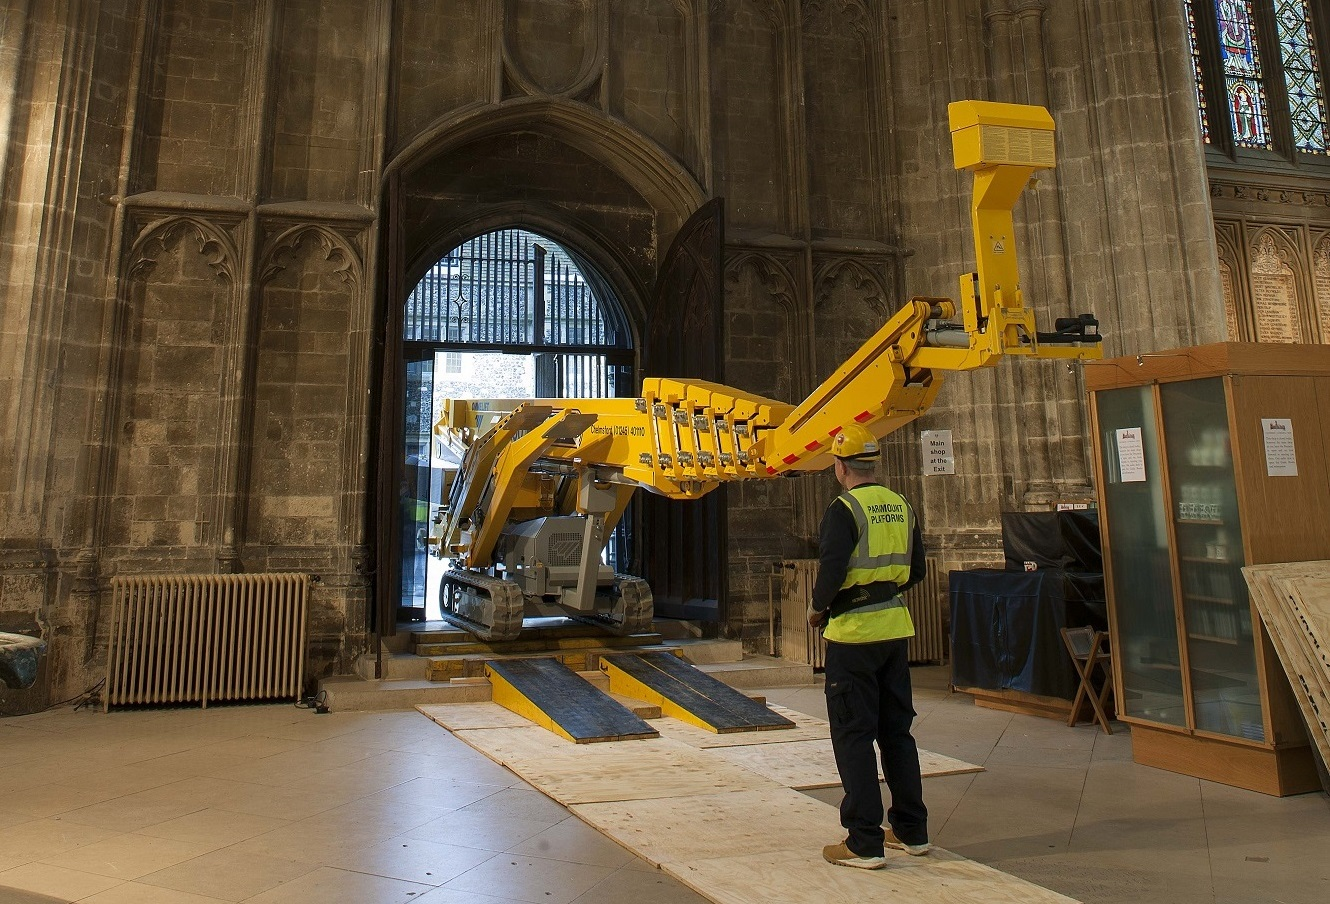 42m Ommelift Assists With Nave Inspection on Canterbury Cathedral